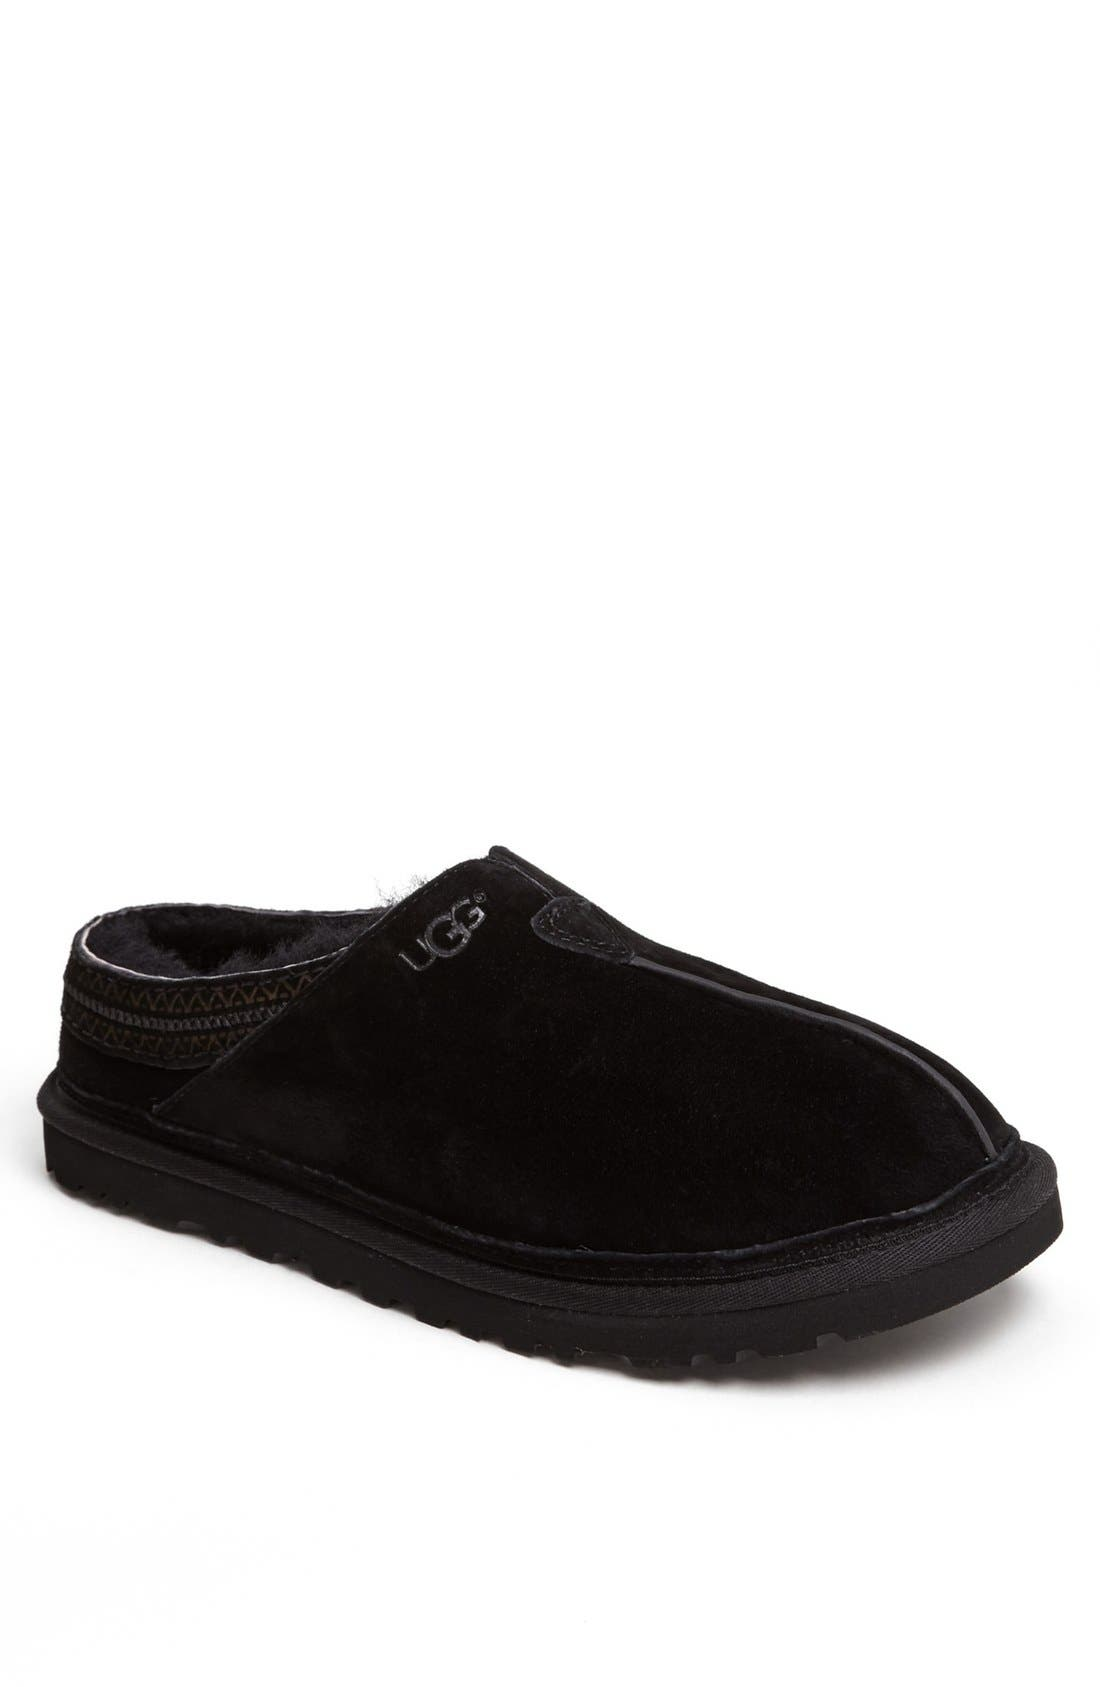 Neuman Slipper,                         Main,                         color, Black